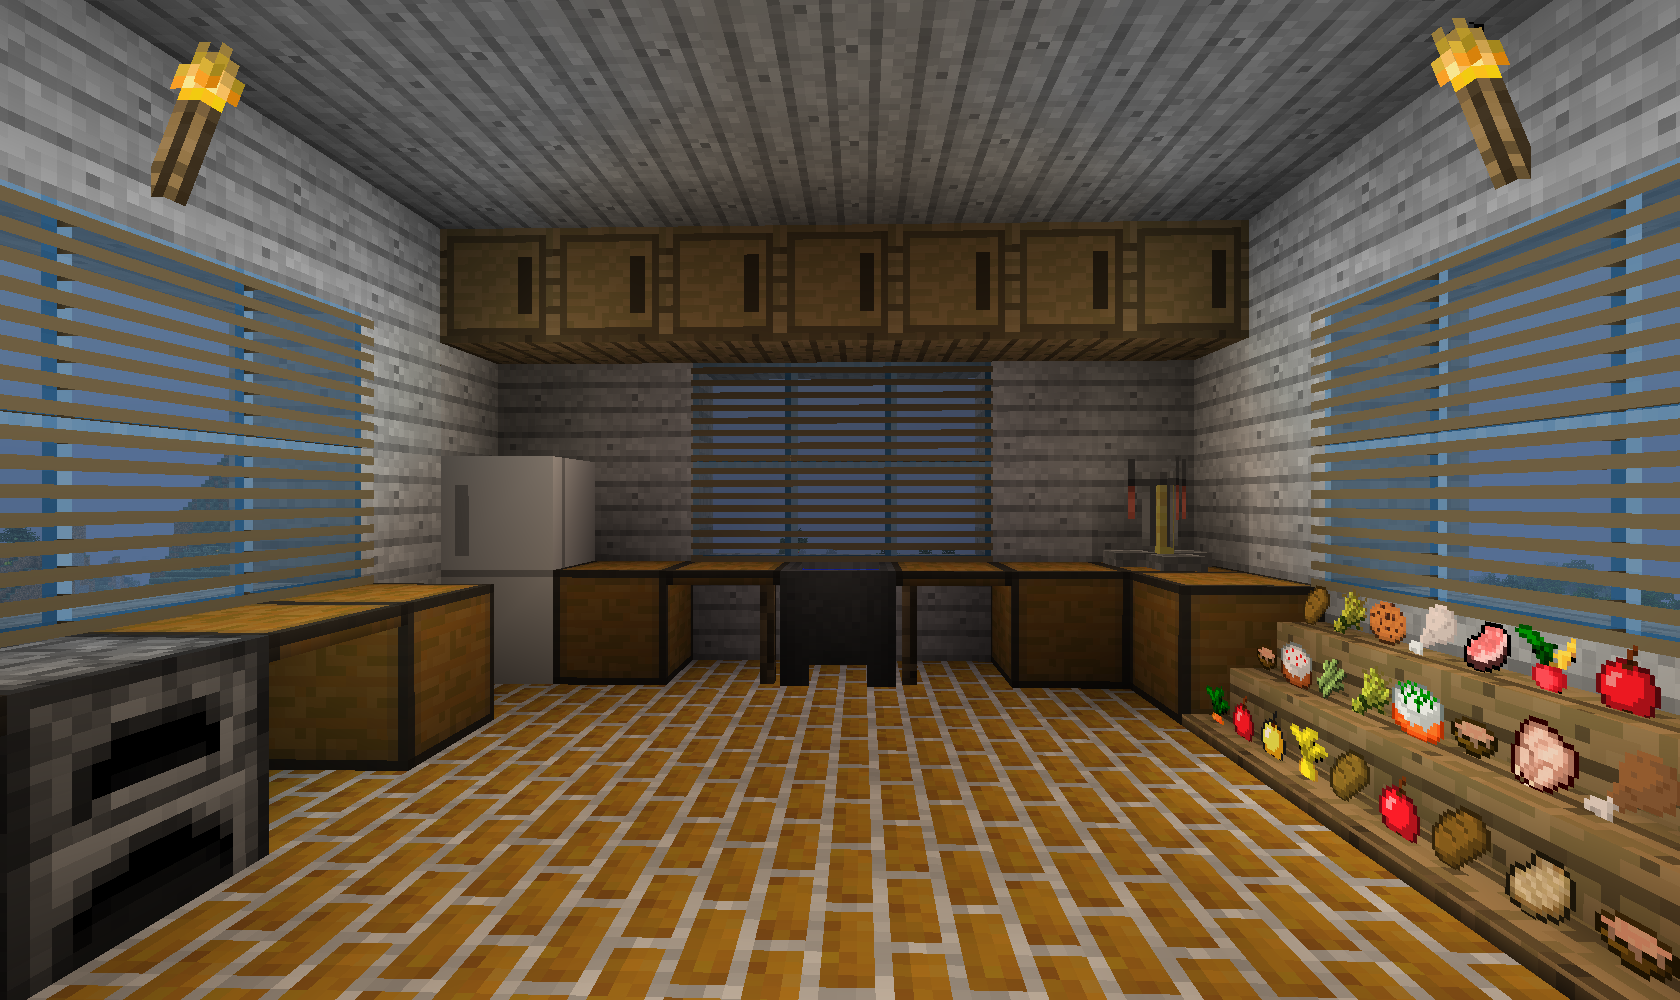 Minecraft Kitchen Minecraft Kitchen Ideas Minecraft Houses Minecraft House Designs